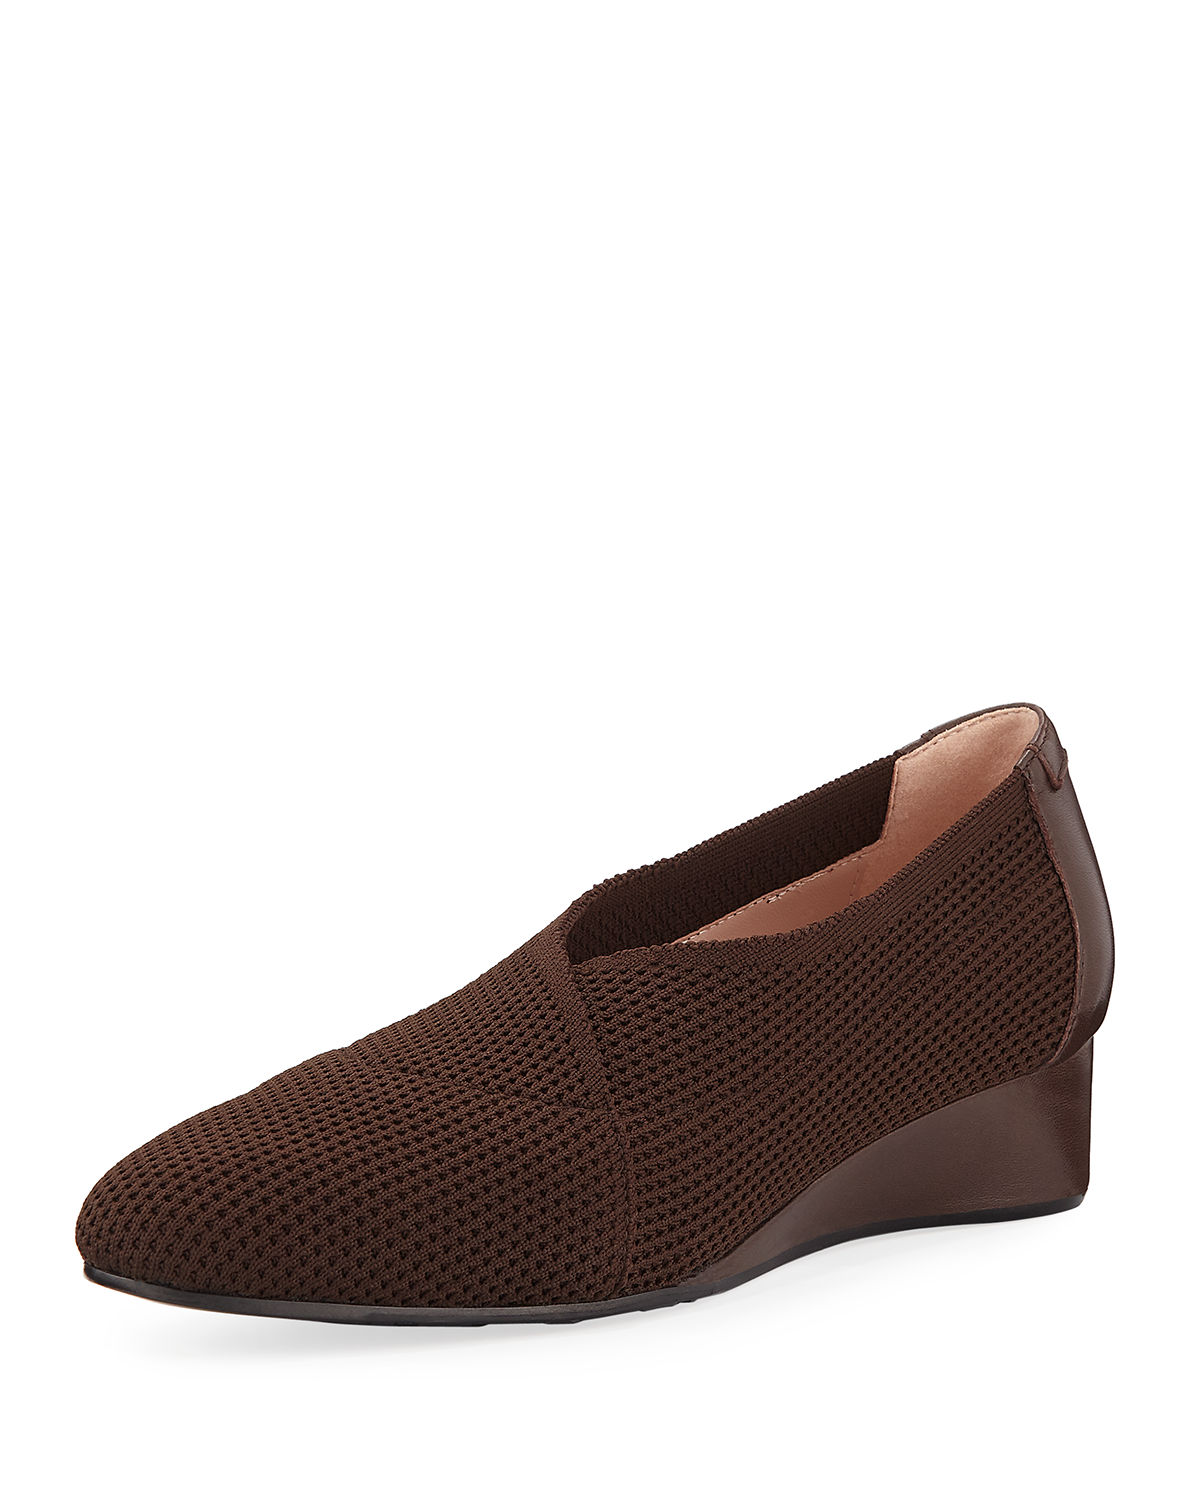 Celeste Demi-Wedge Knit Pumps